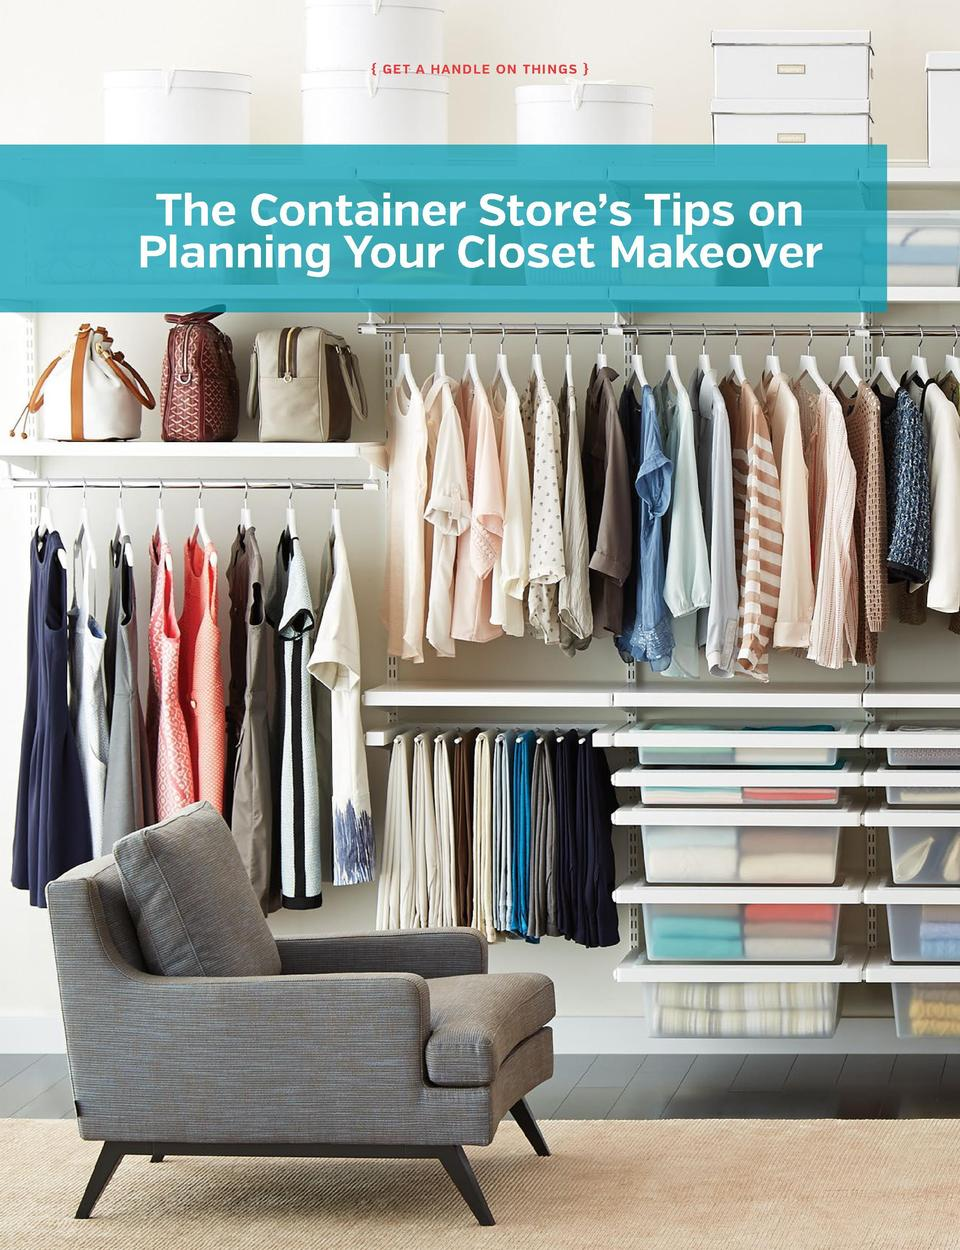 Ge t a Hand l e o n Th i ng s    At The Container Store, we   ve been helping our customers get organized for over 36 ye...